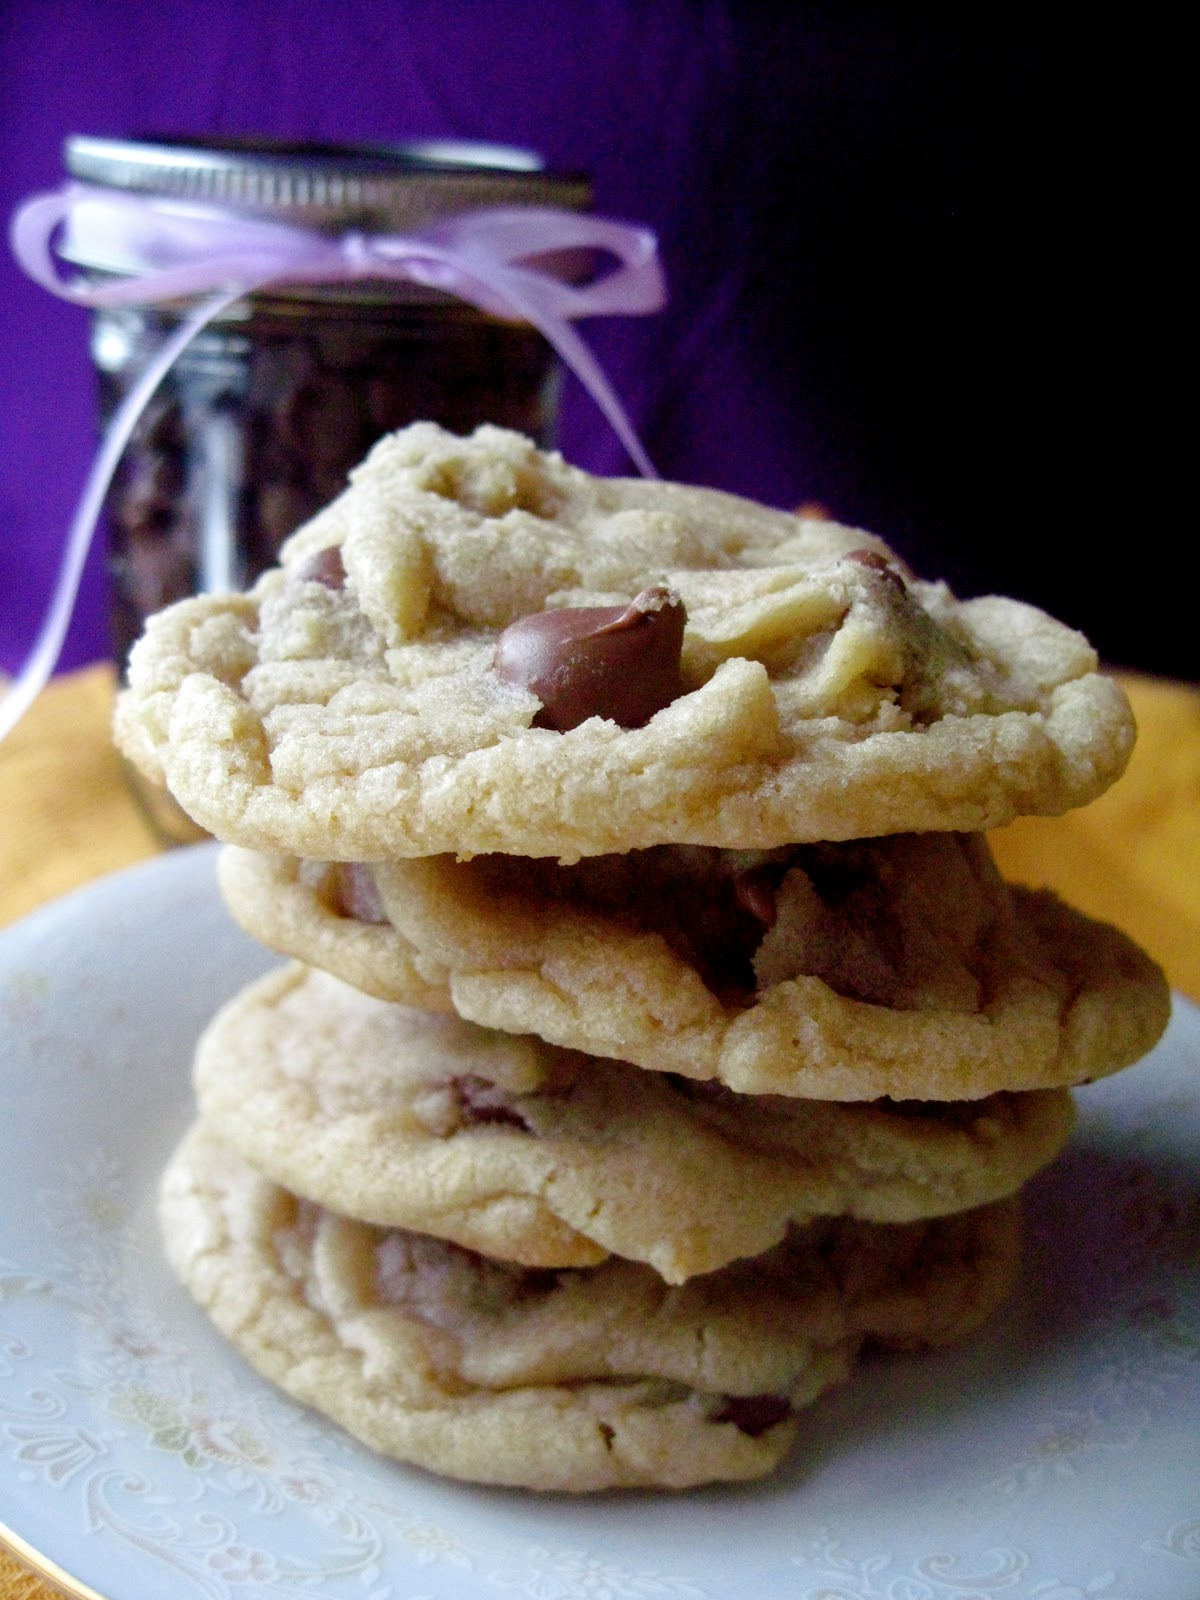 Big Chocolate Chip Cookies - Your Cup of Cake